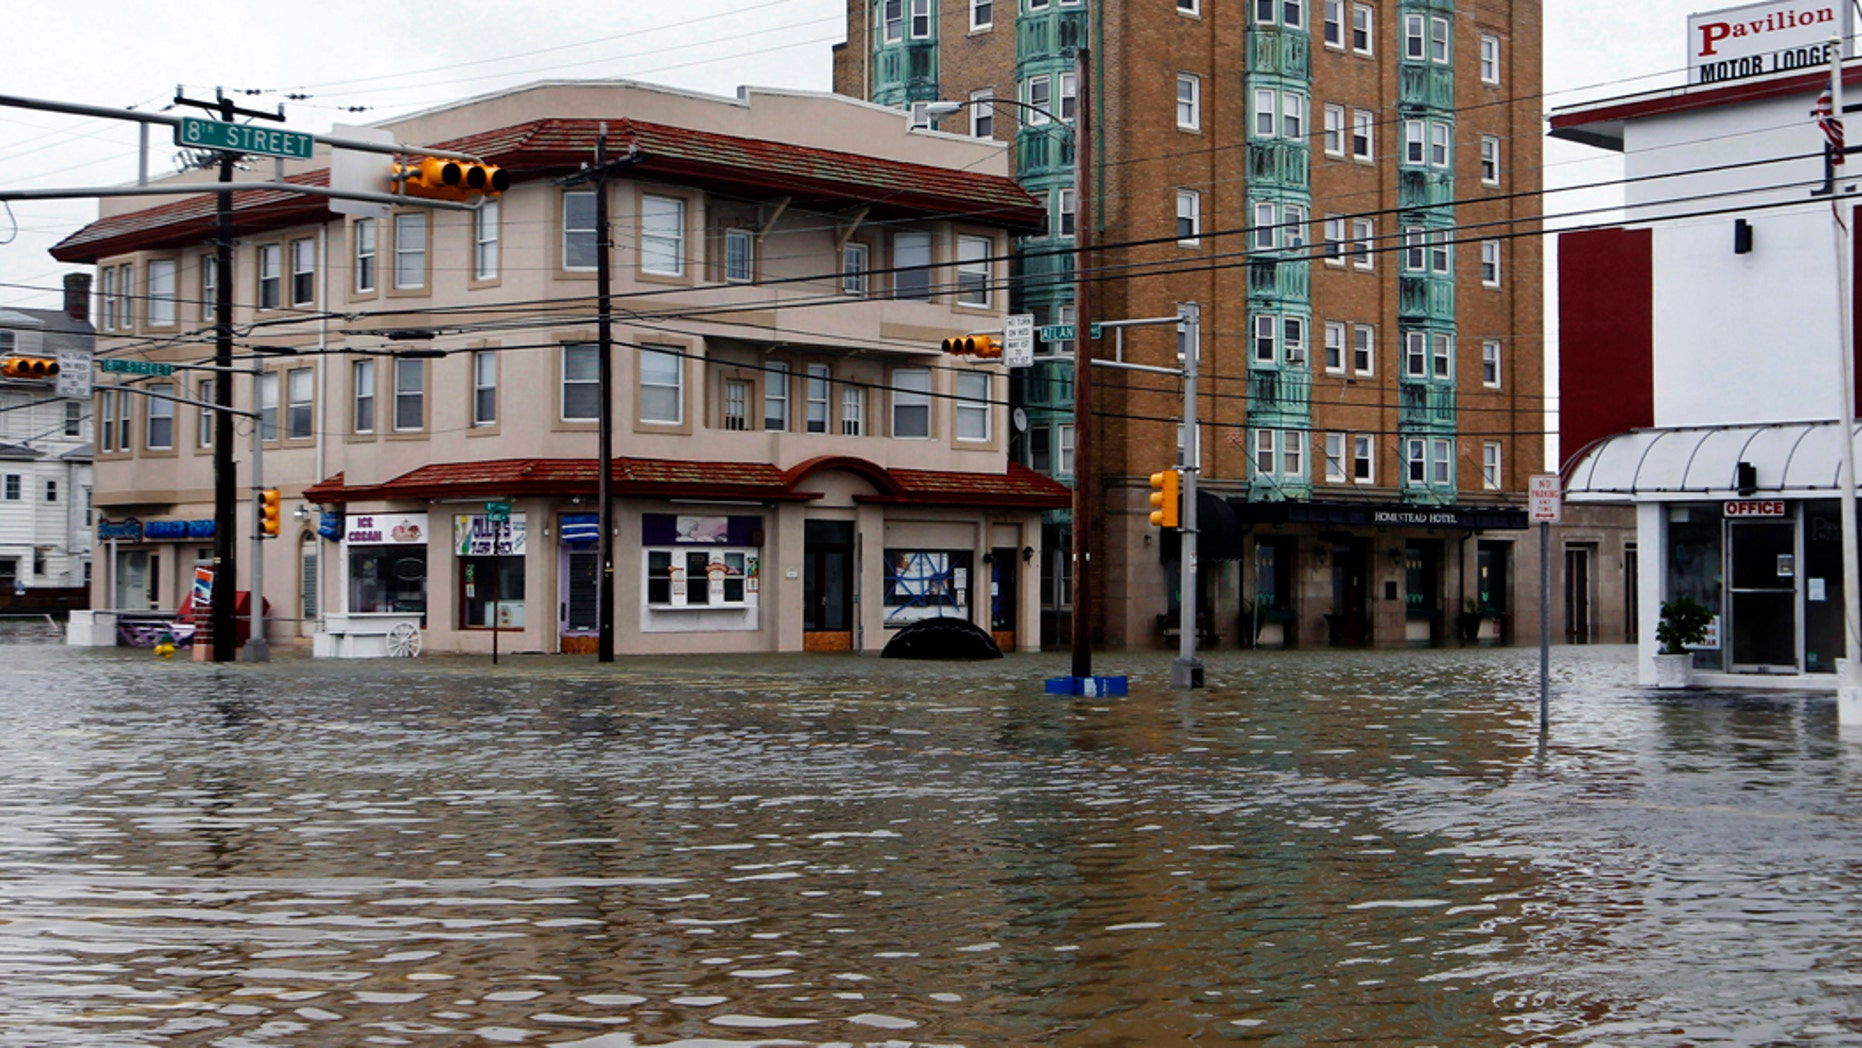 """Experts warn that climate change could lead to """"devastating tsunamis."""" (AP Photo/Mel Evans, File) (Copyright 2018 The Associated Press. All rights reserved.)"""